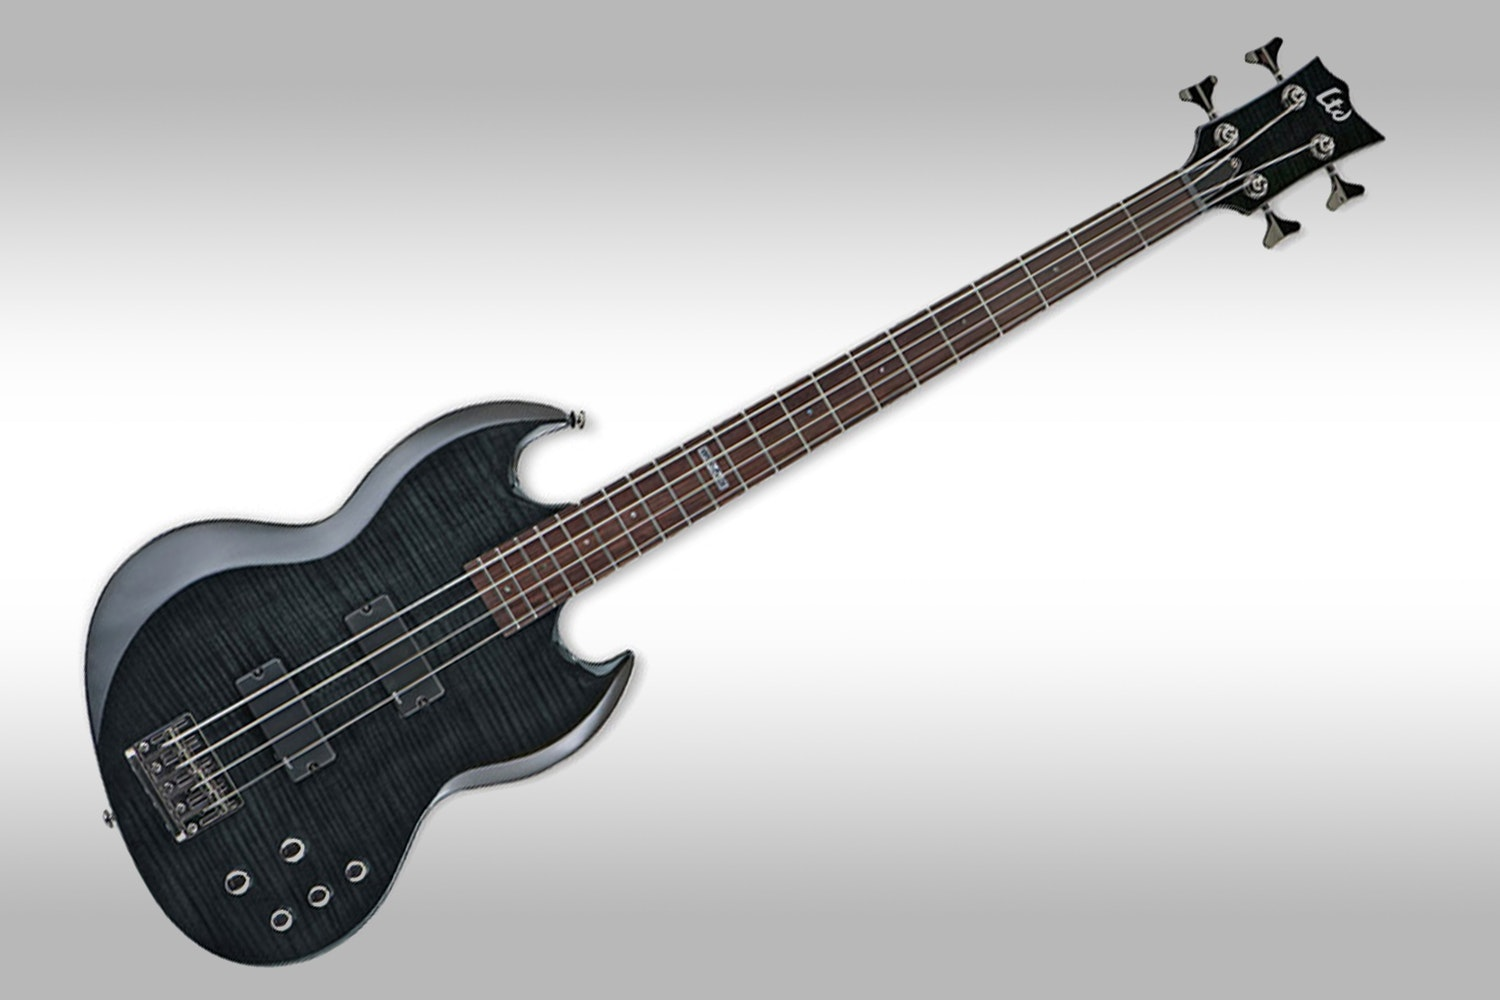 Viper 154DX See-Thru Black Flamed Maple